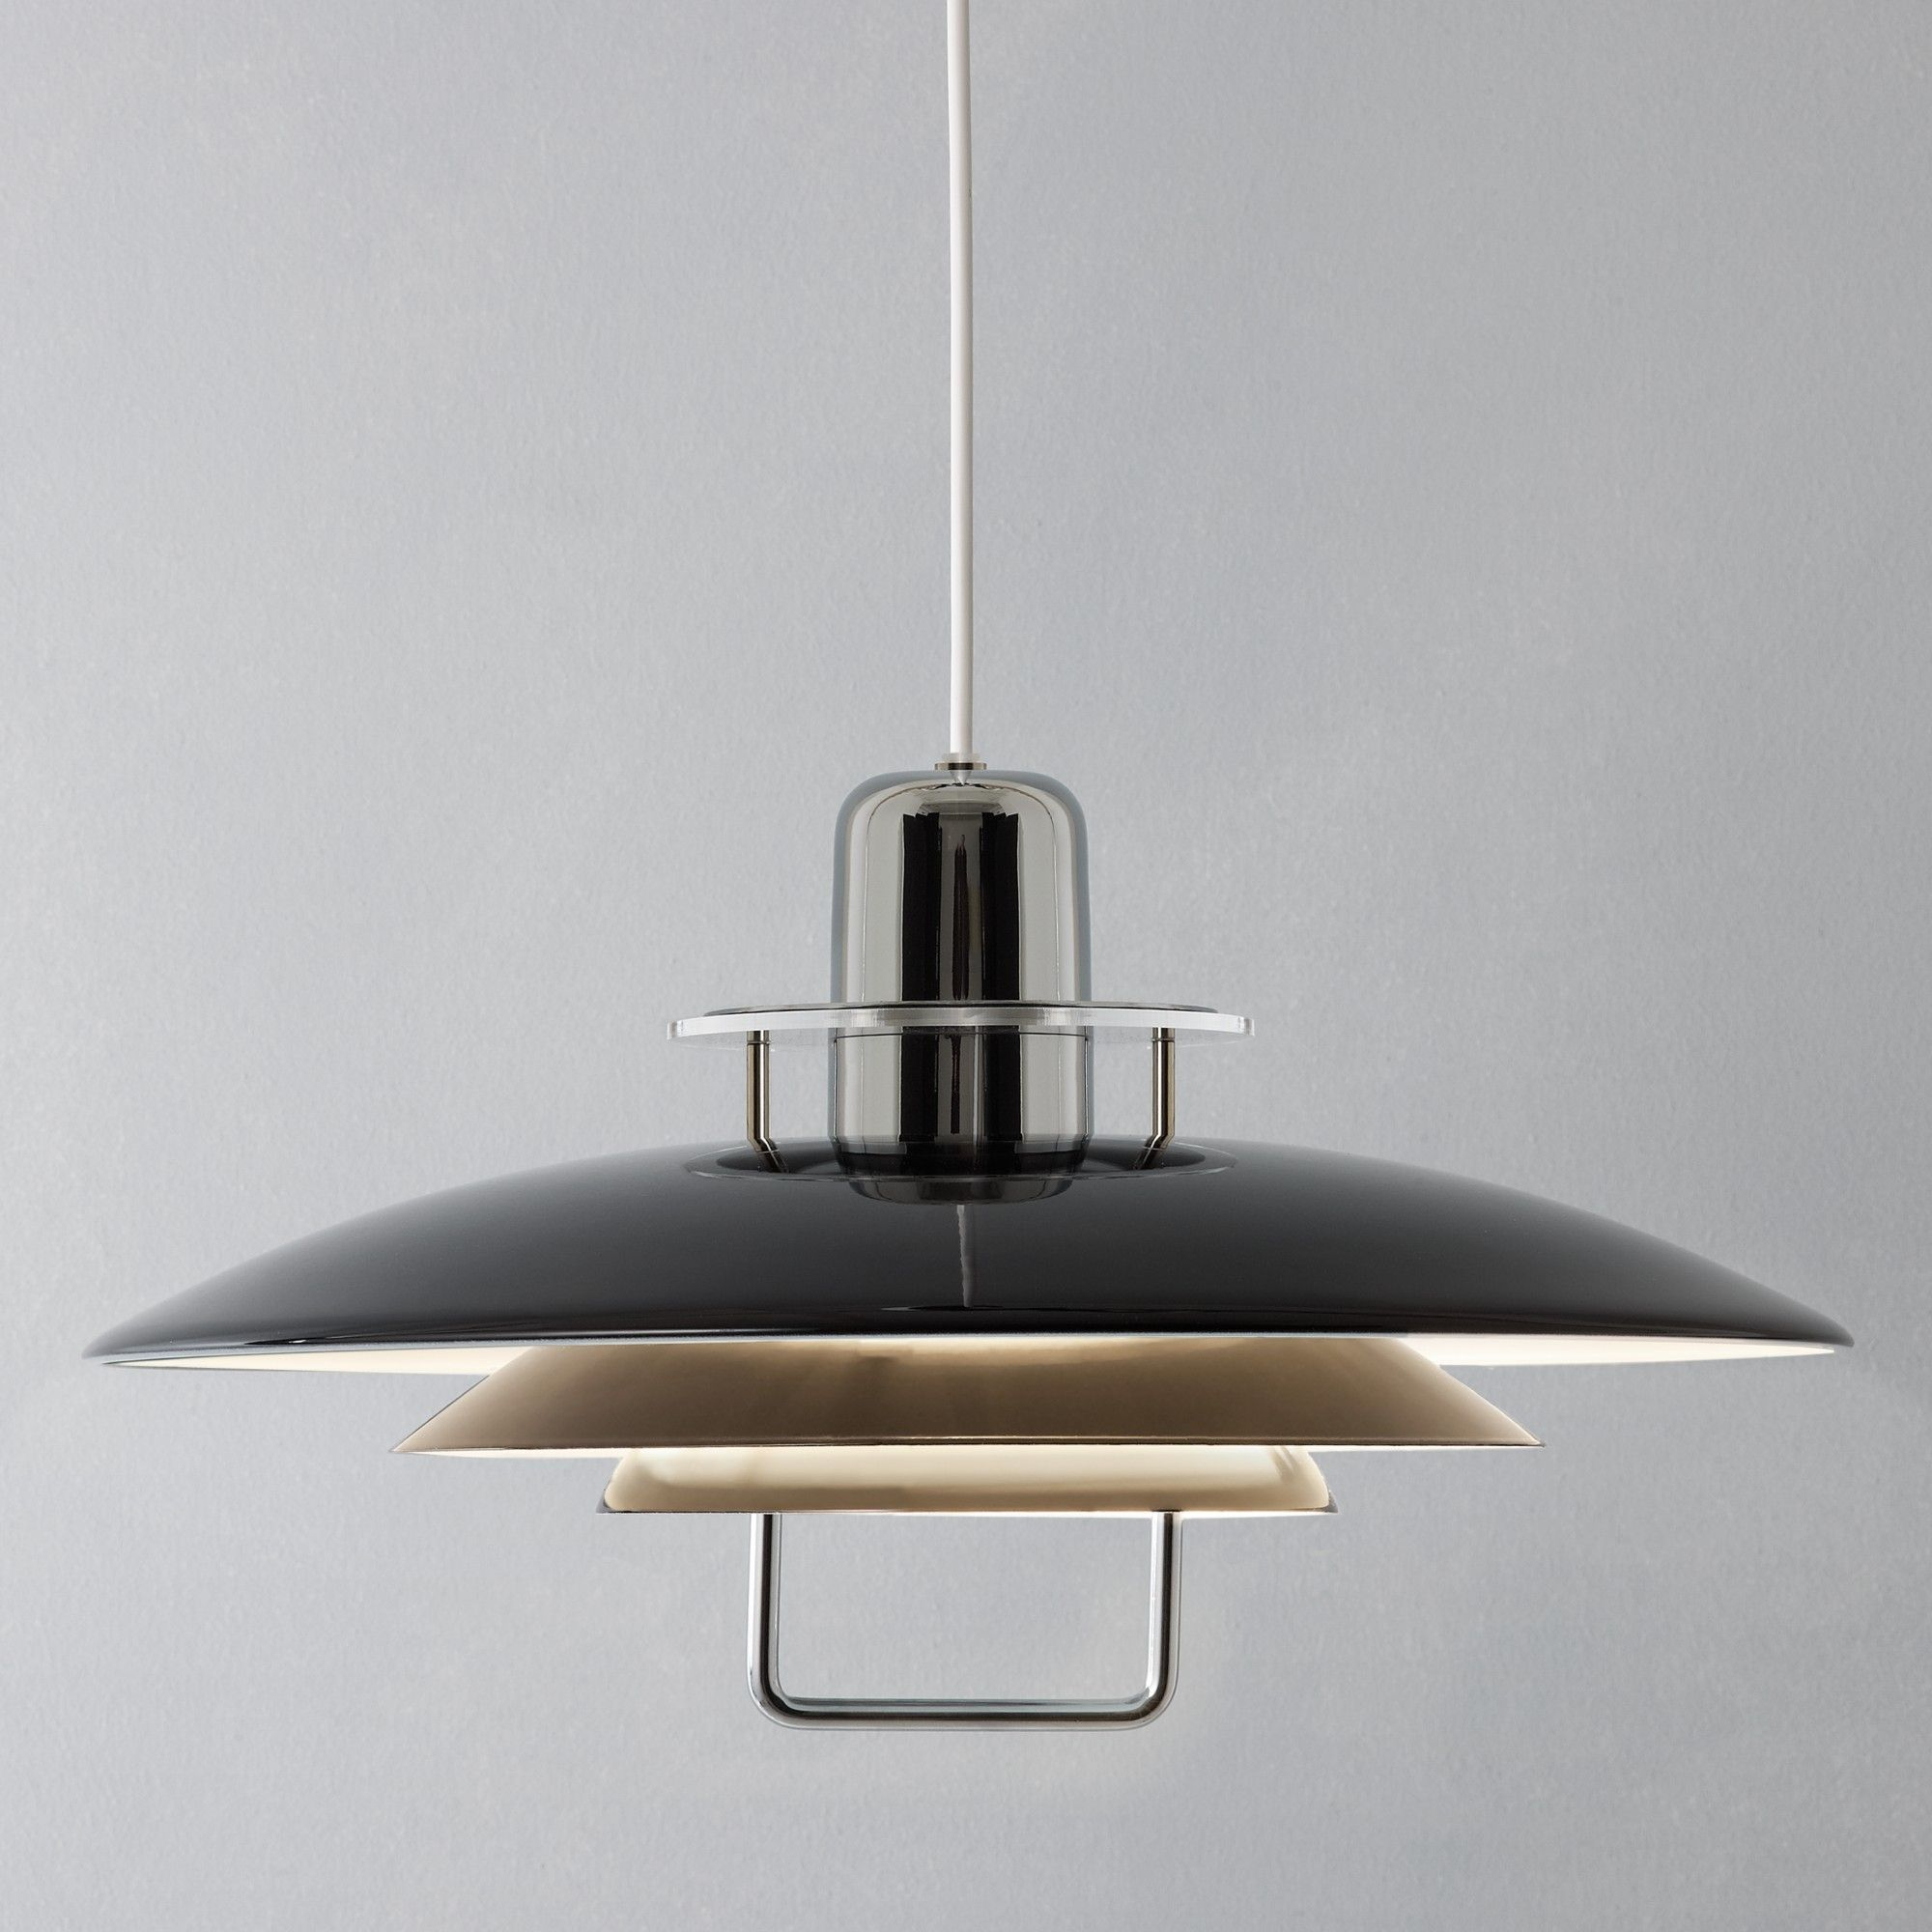 Bathroom Light Fixtures John Lewis belid felix rise and fall ceiling light | ceiling, john lewis and